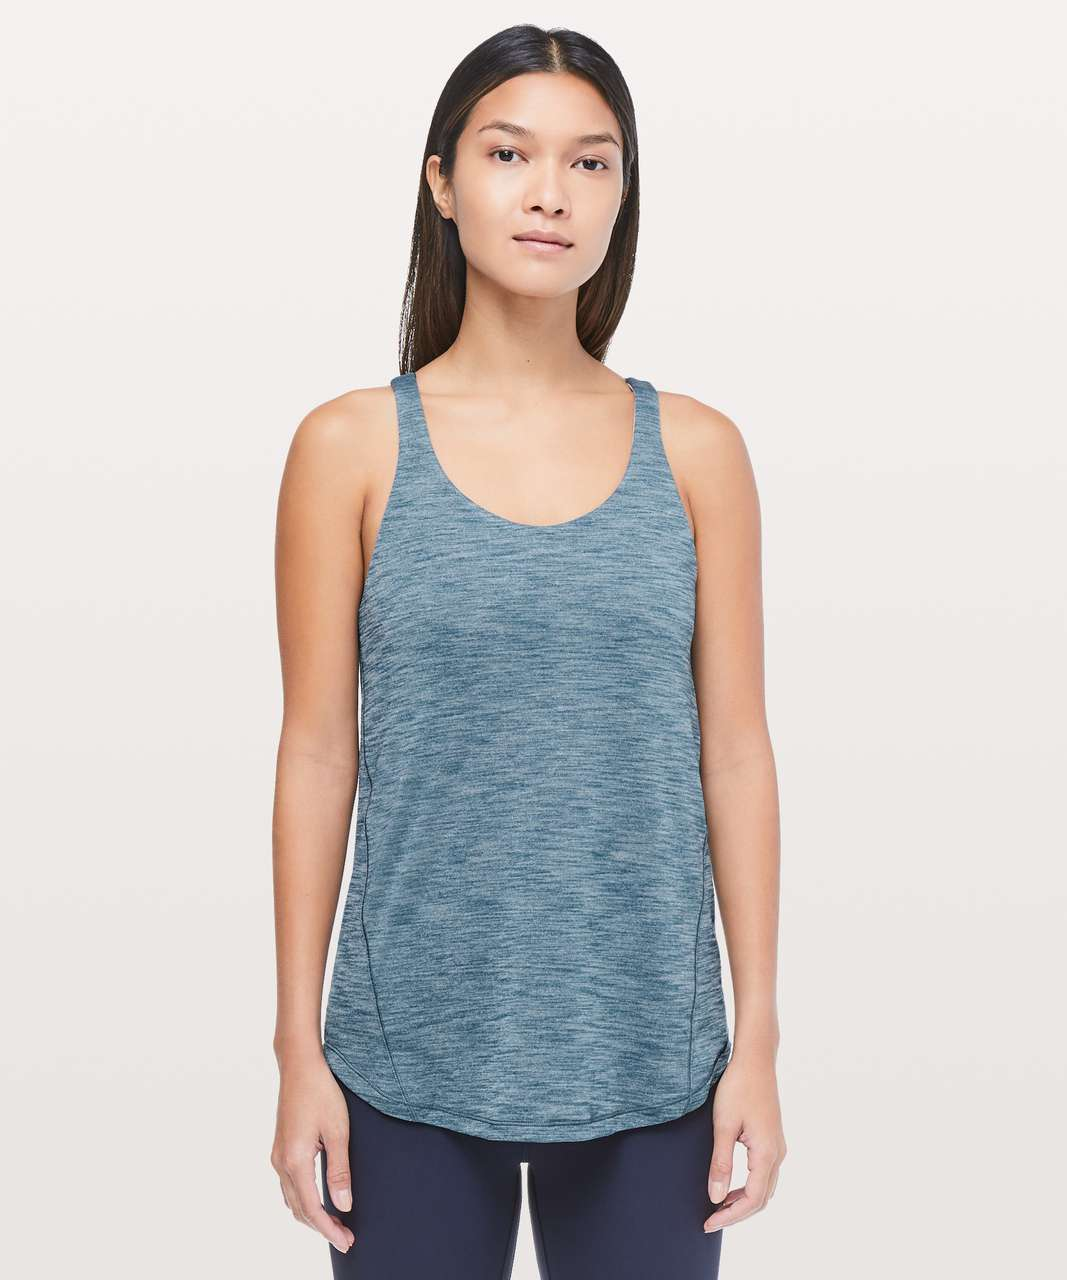 Lululemon Moment To Movement 2-In-1 Tank - Heathered Carbon Blue / Paisley Glaze Multi